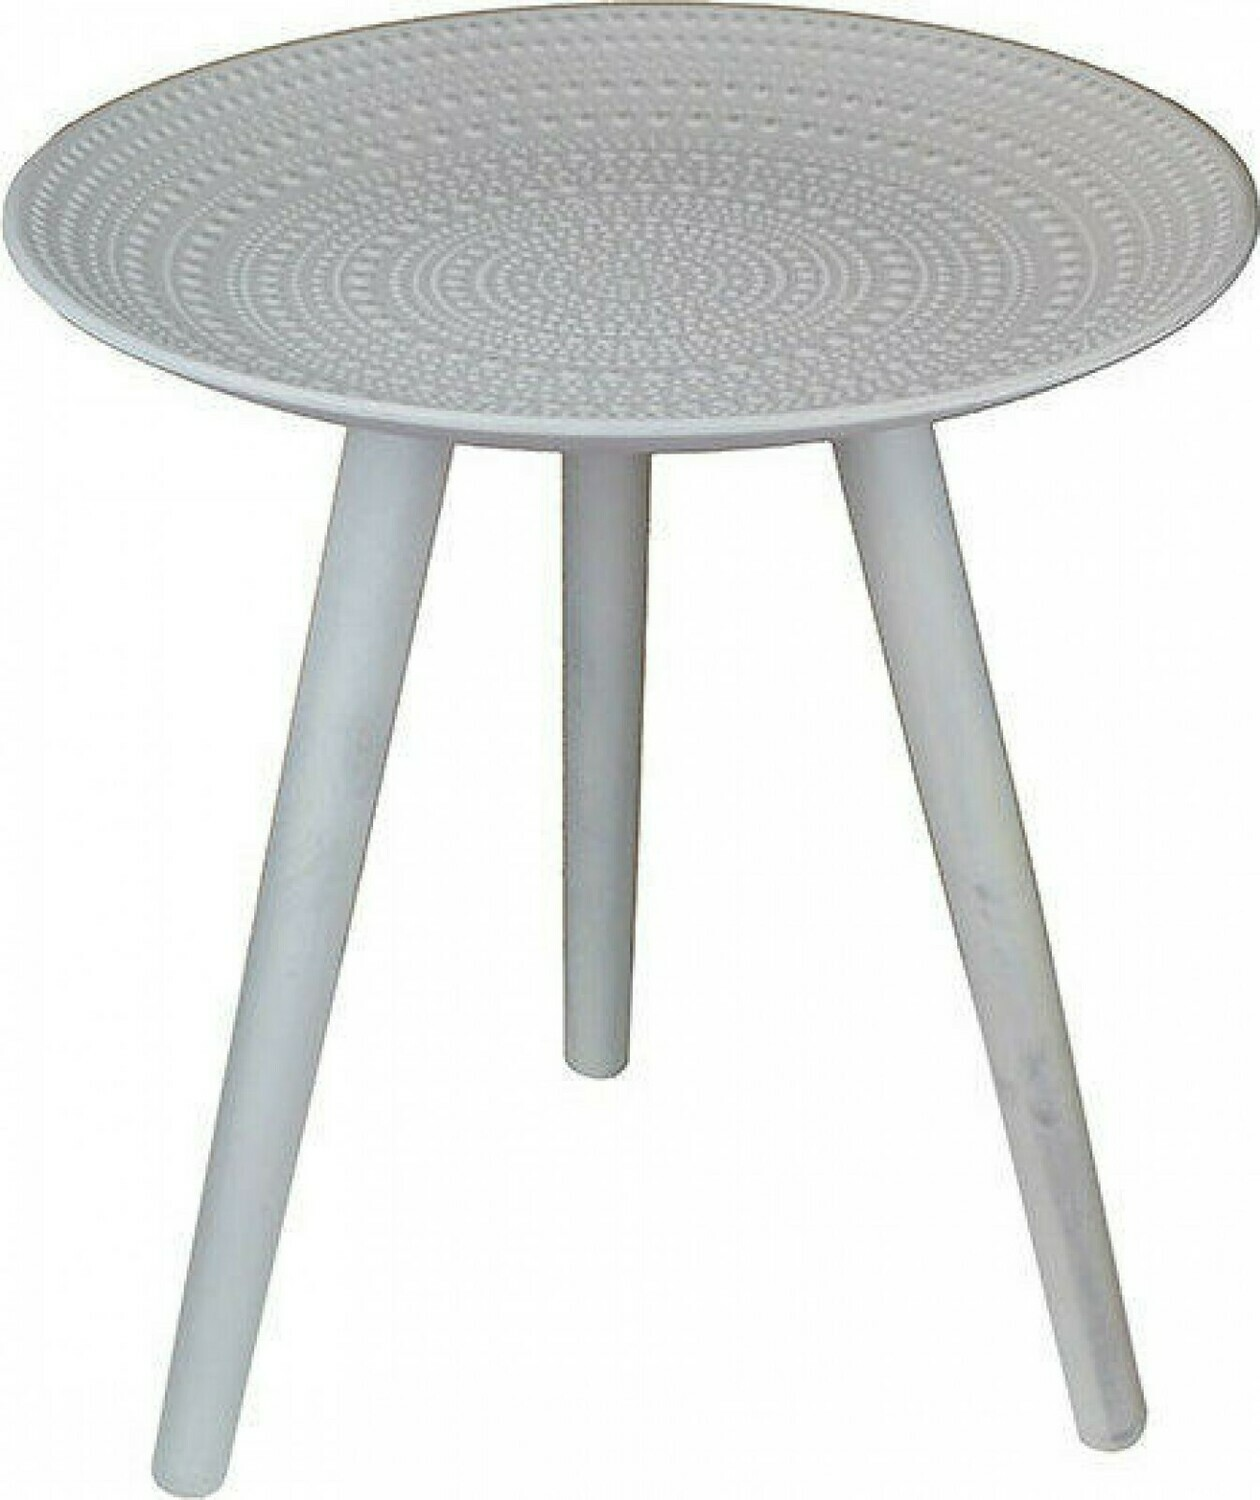 Side Table Concentric Dots